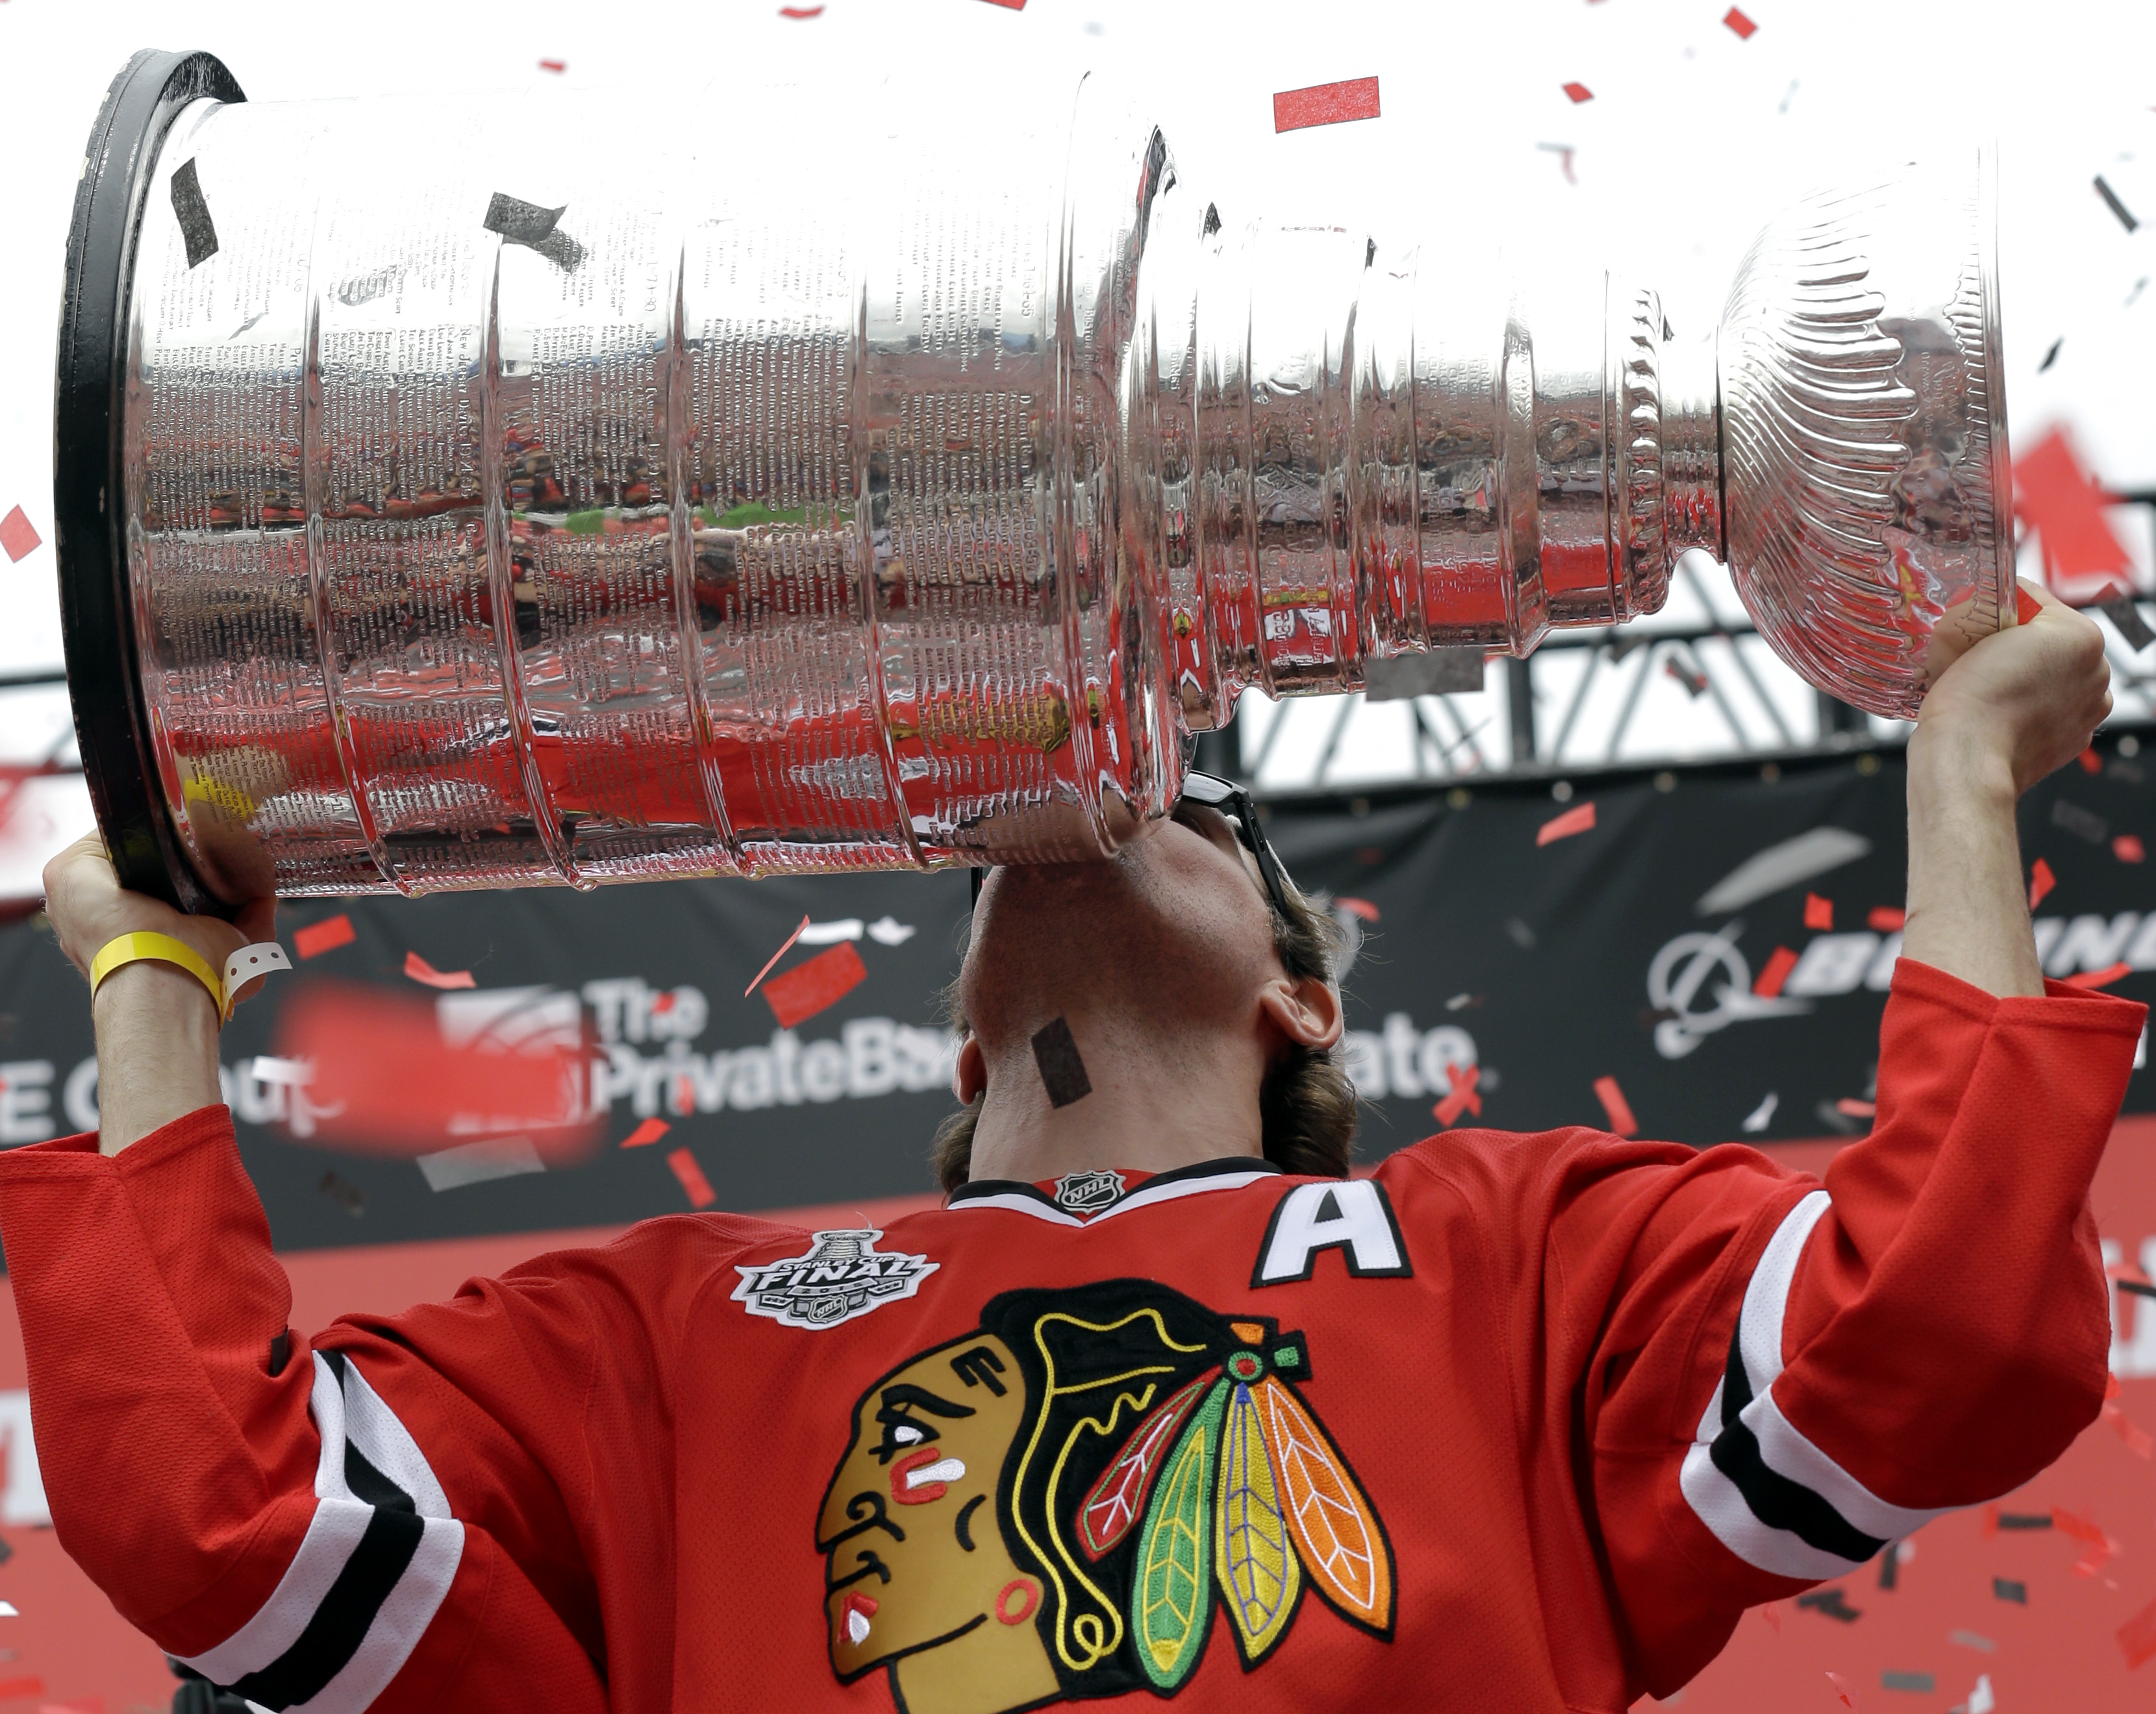 Chicago Blackhawks left wing Patrick Sharp kisses the Stanley Cup Trophy as he holds it up during a rally at Soldier Field for the NHL Stanley Cup hockey champions Thursday, June 18, 2015, in Chicago. (AP Photo/Nam Y. Huh)